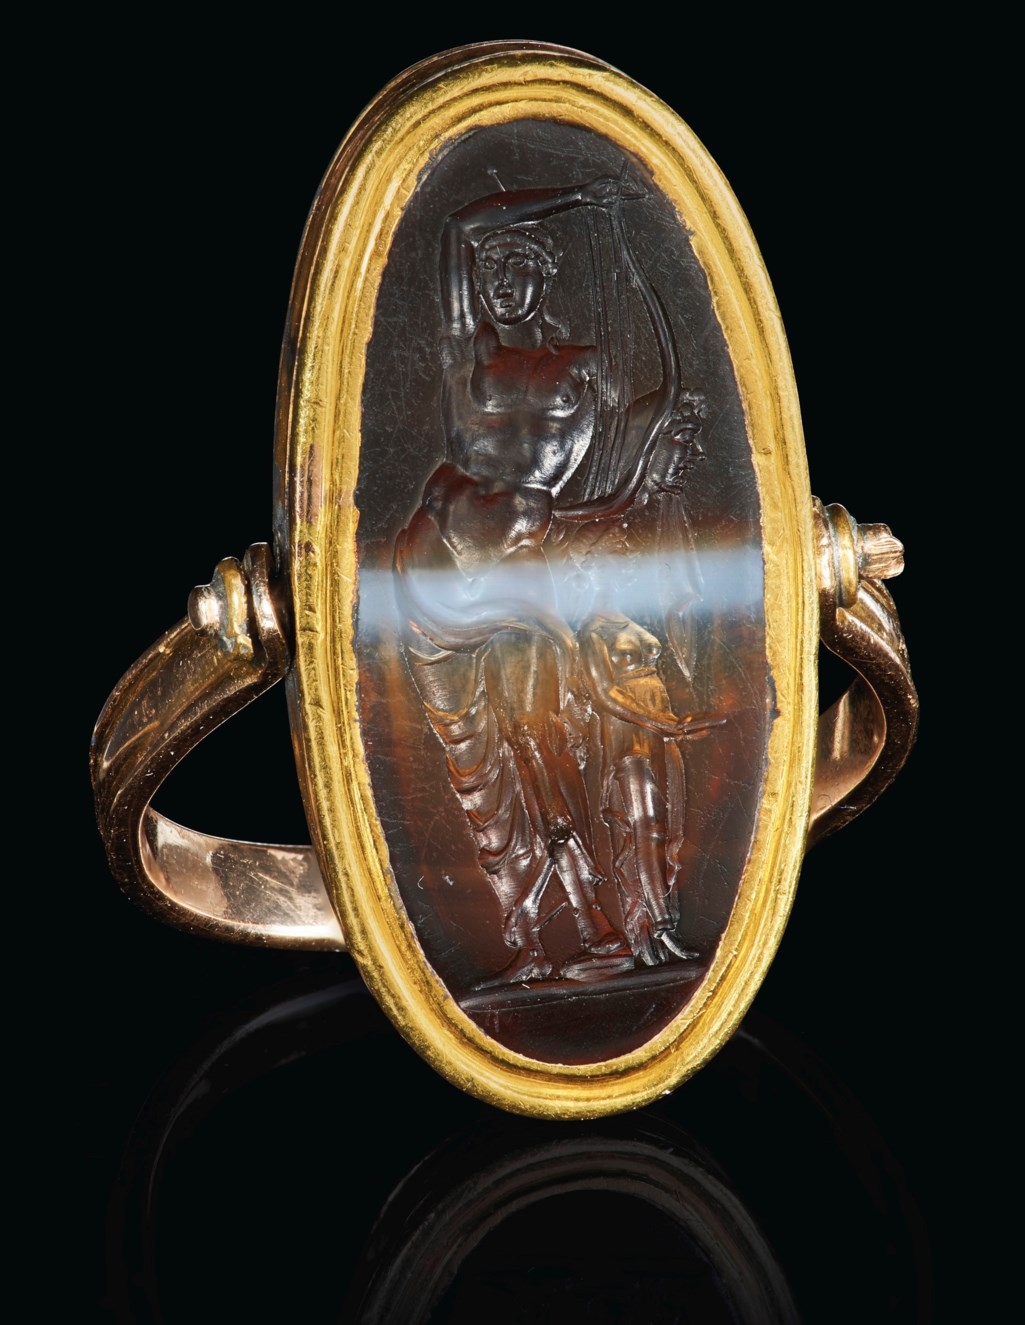 AN ITALIC BANDED AGATE RINGSTONE WITH APOLLO